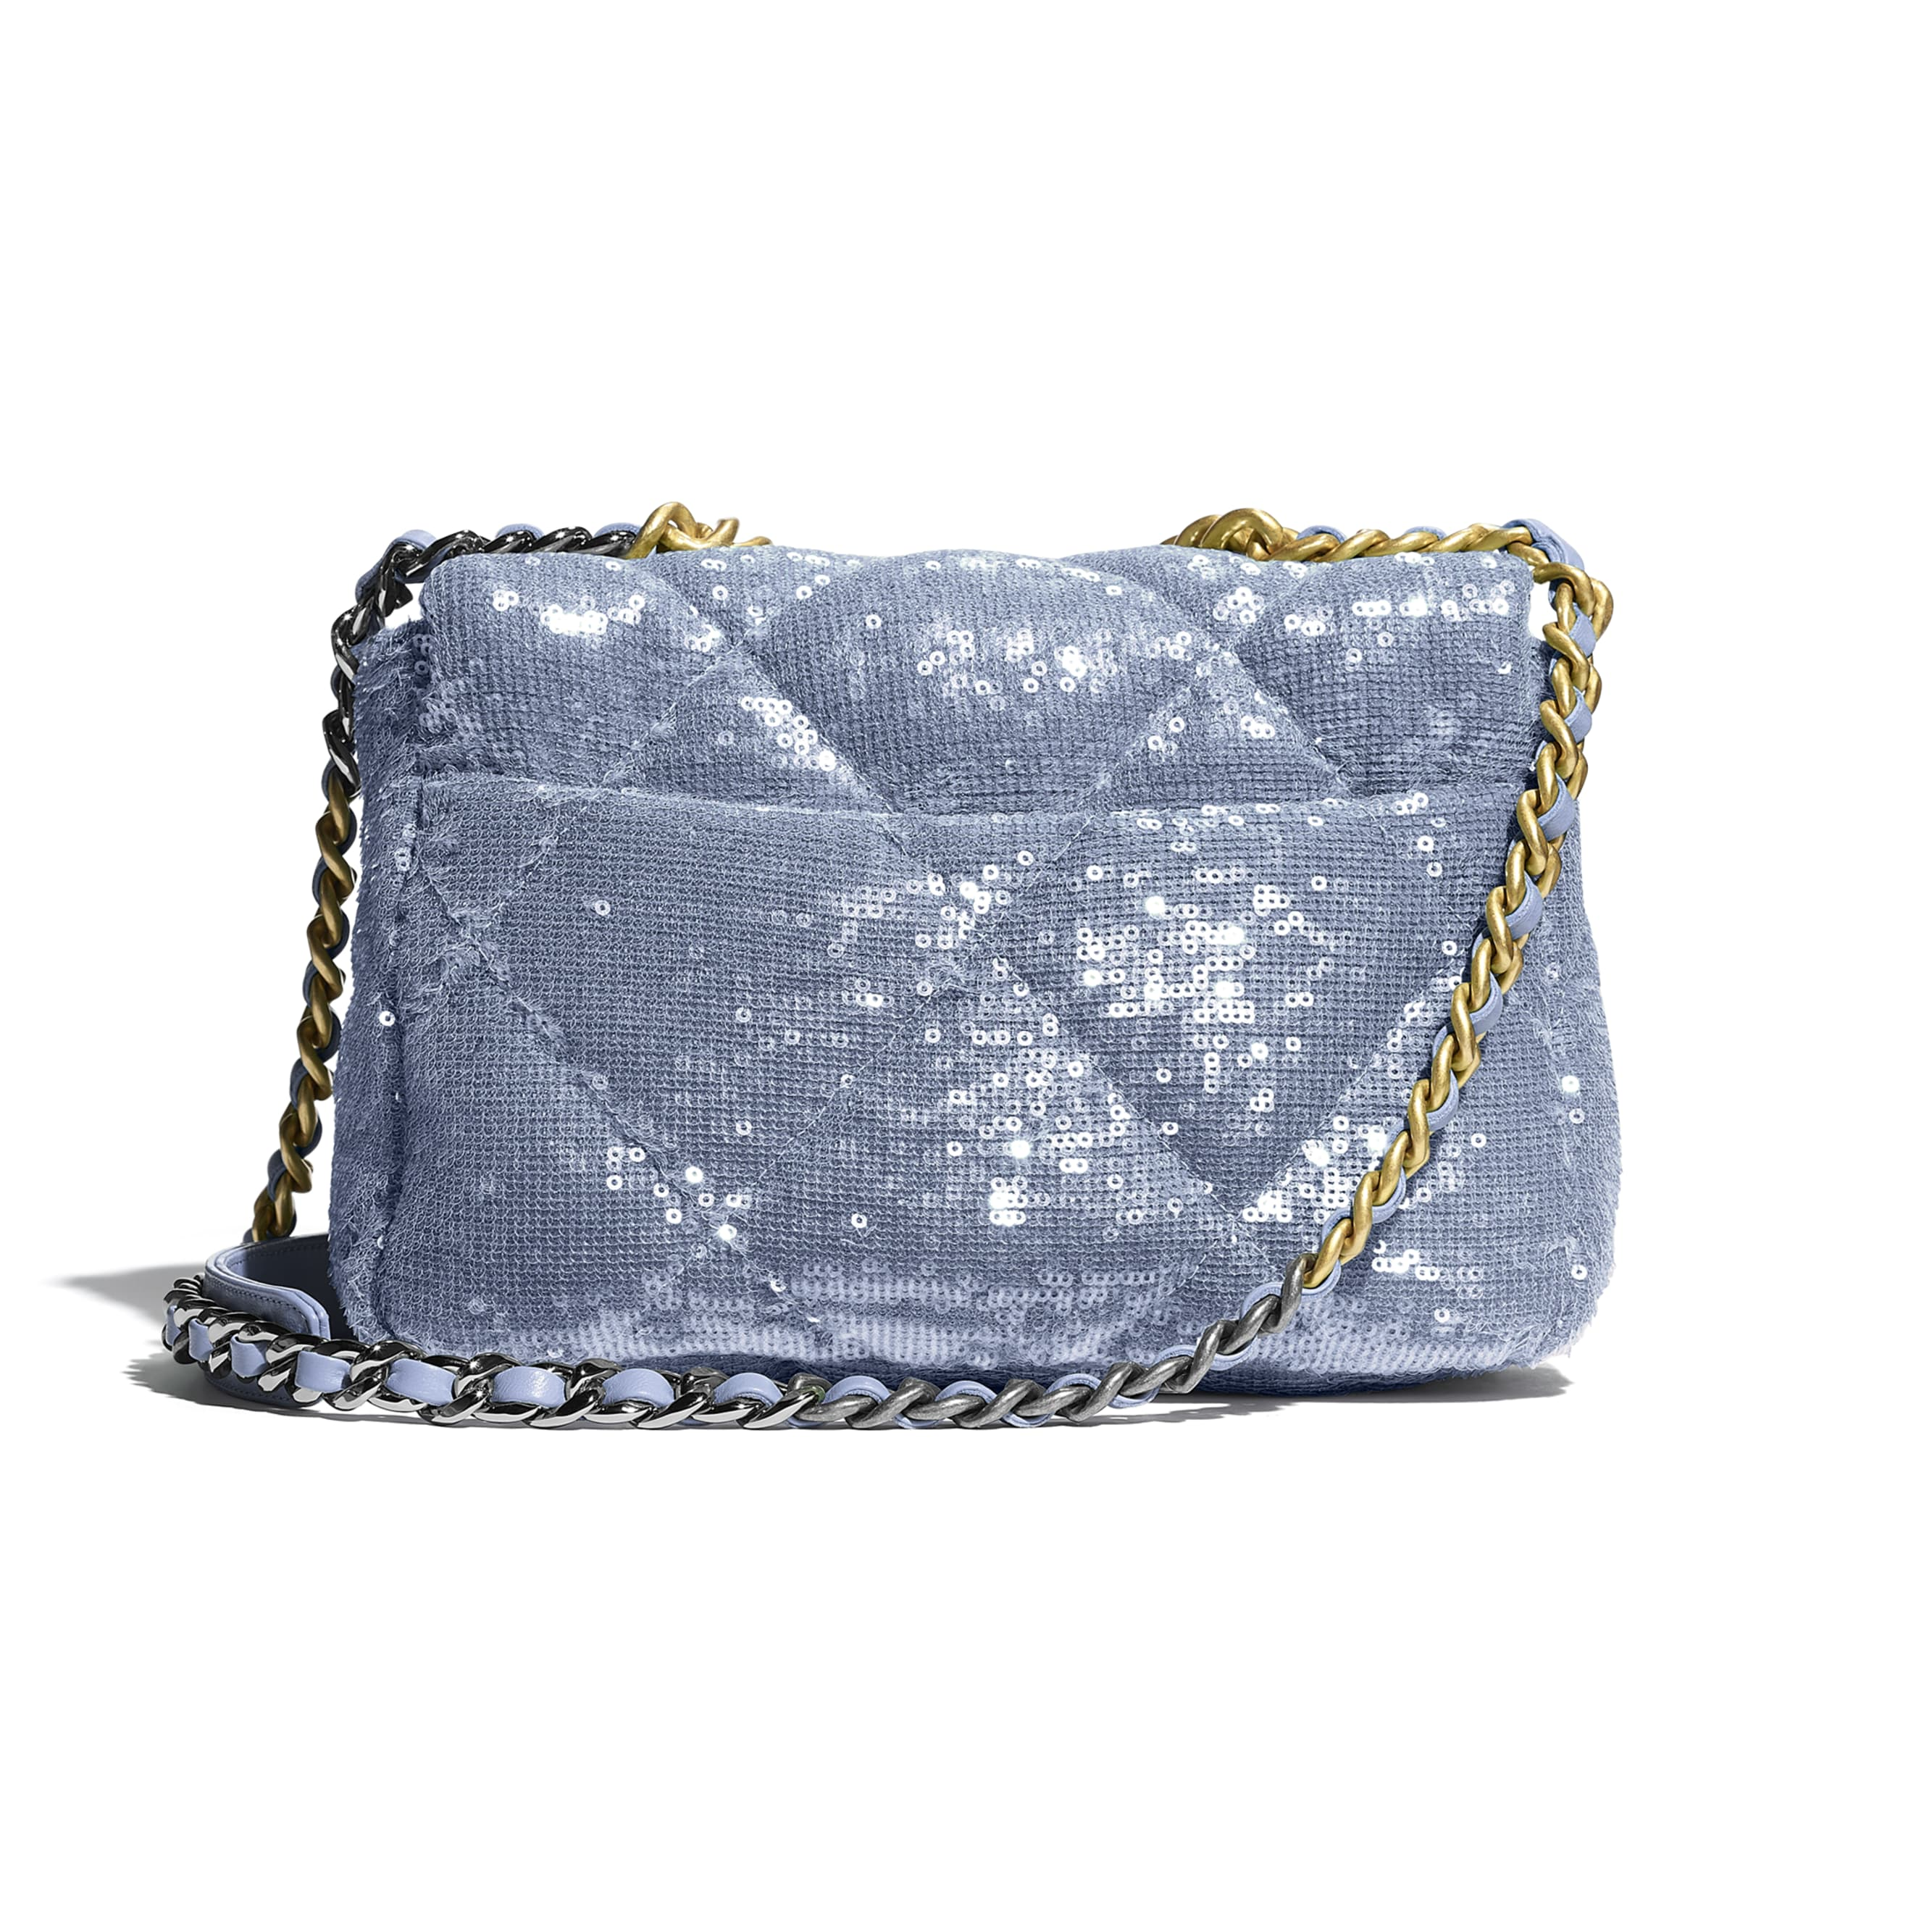 CHANEL 19 Flap Bag - Sky Blue - Sequins, calfksin, silver-tone & gold-tone metal - CHANEL - Alternative view - see standard sized version